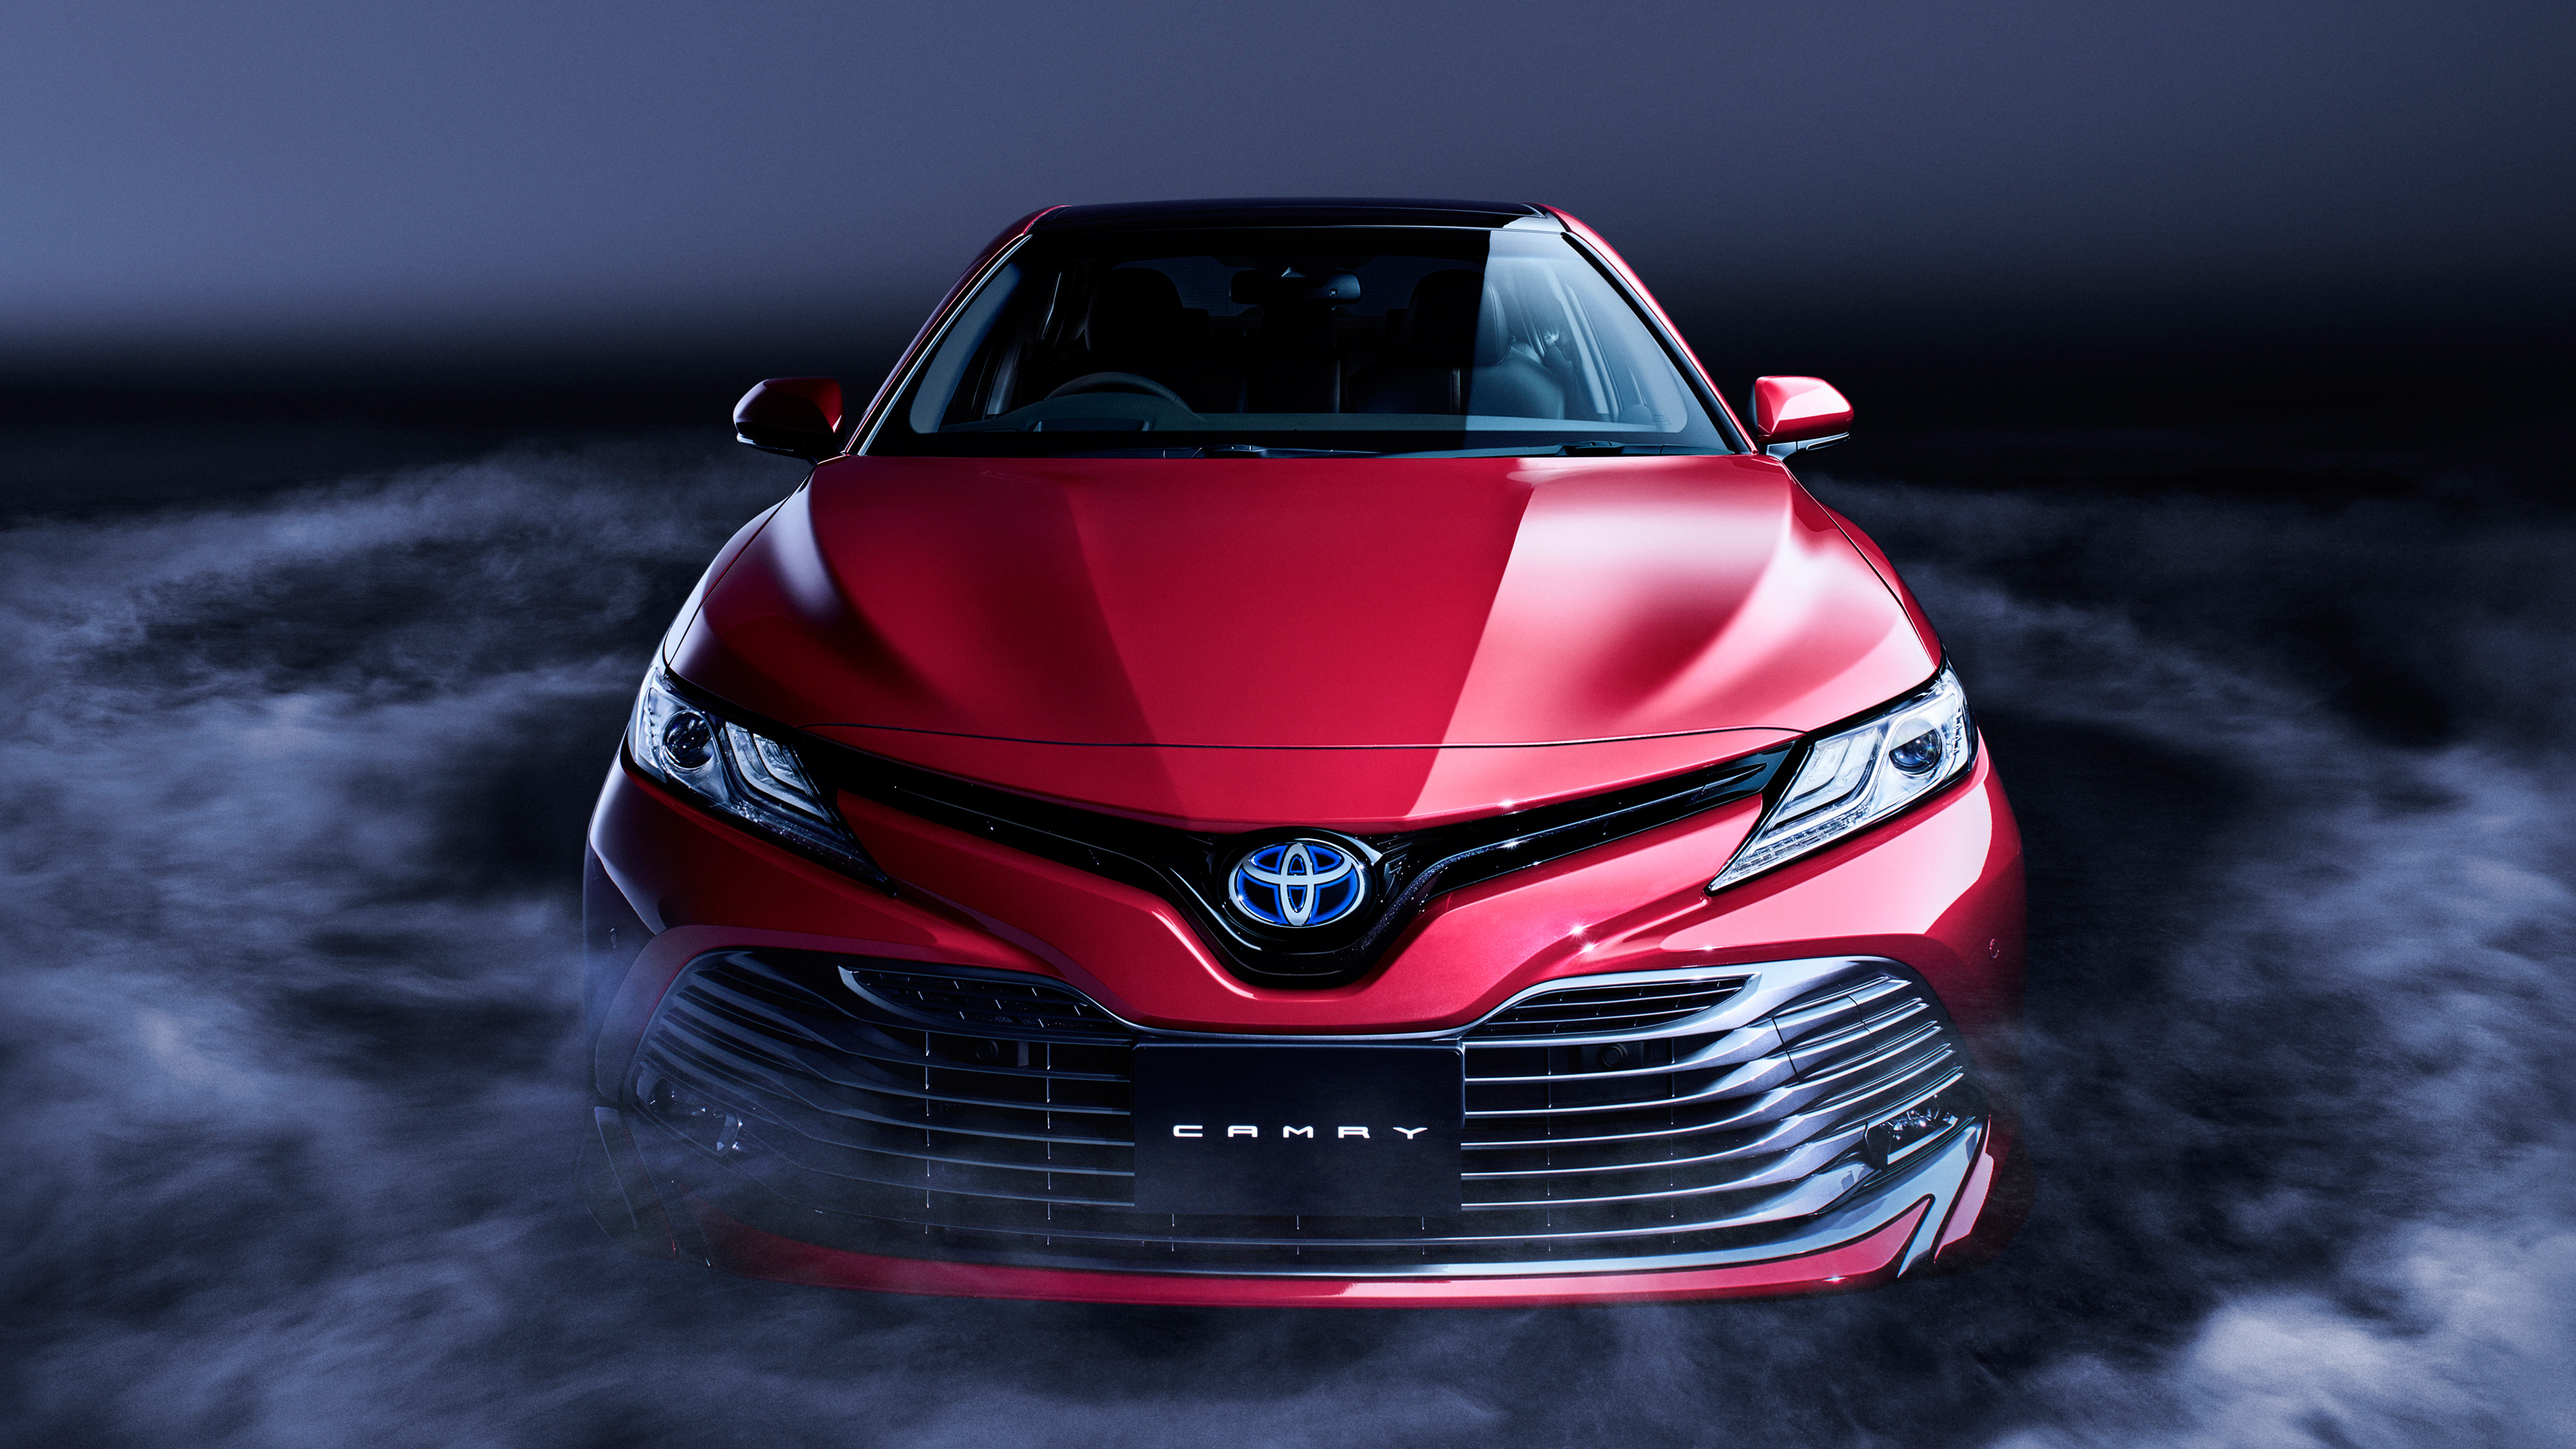 Toyota camry 2018 4k hd cars 4k wallpapers images - 4k wallpaper for cars ...